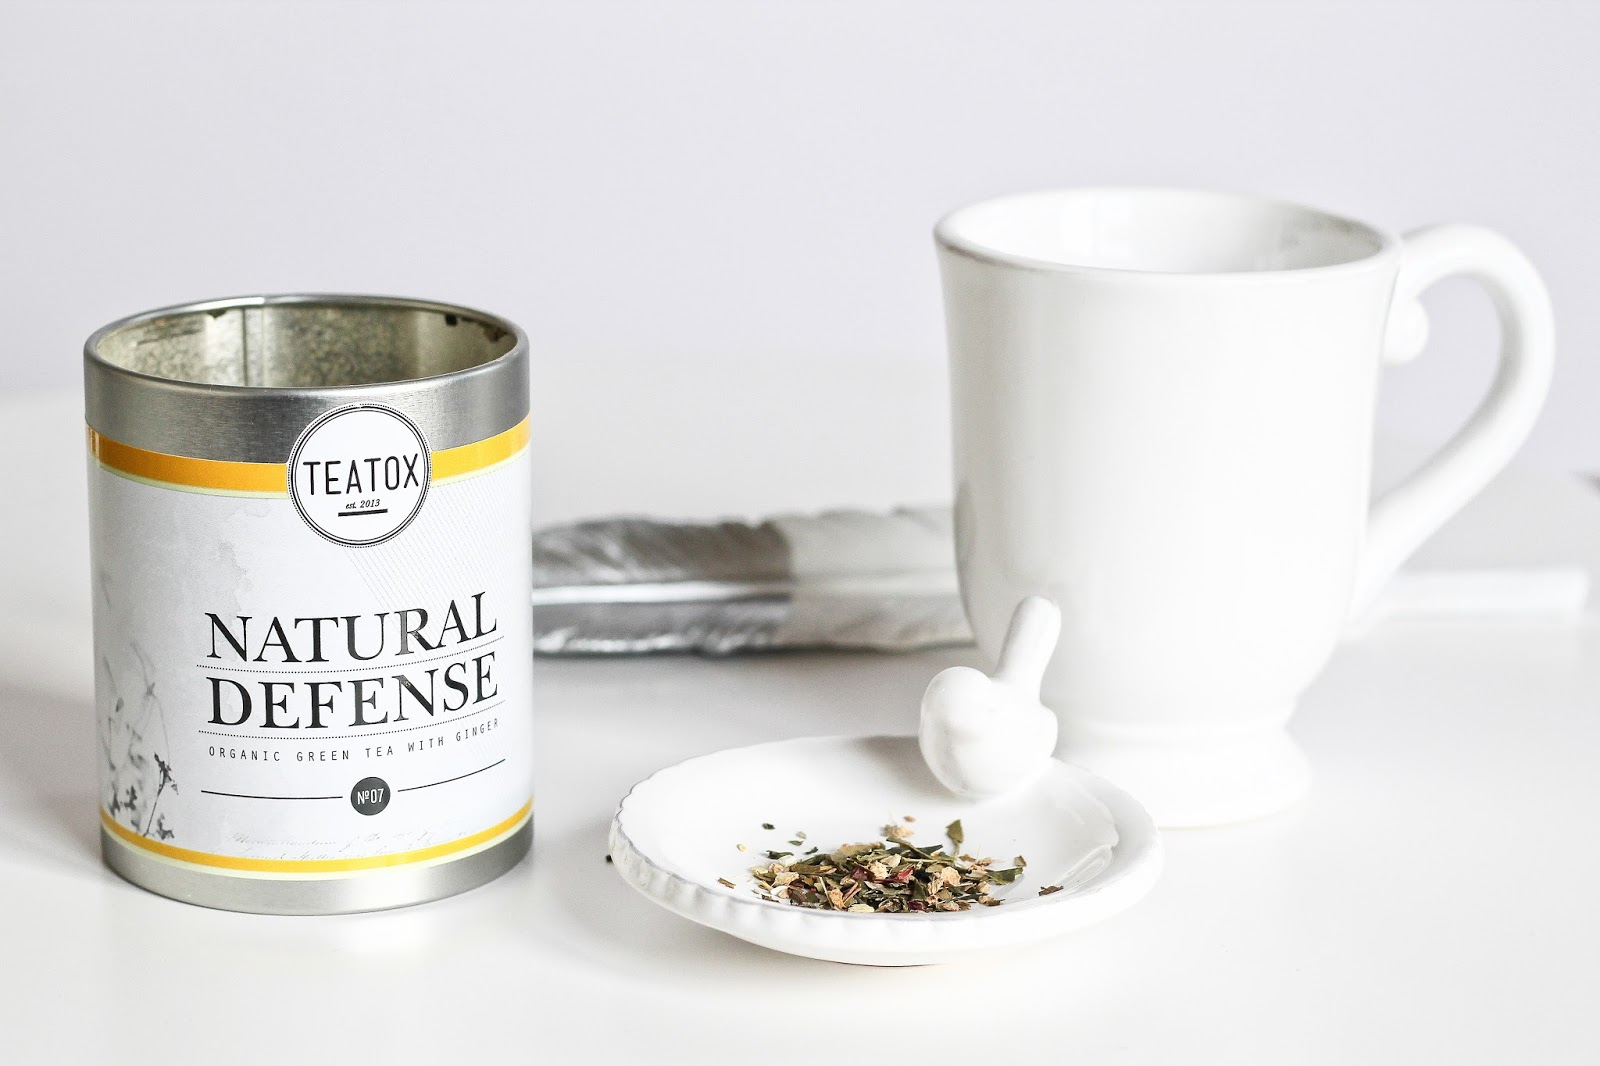 teatox tea tox detox detoxifiant thé the time mincir faire attention rééquilibrage alimentaire cure skinny detox mug mr wonderful good morning good night matin soir natural defense immunitaire